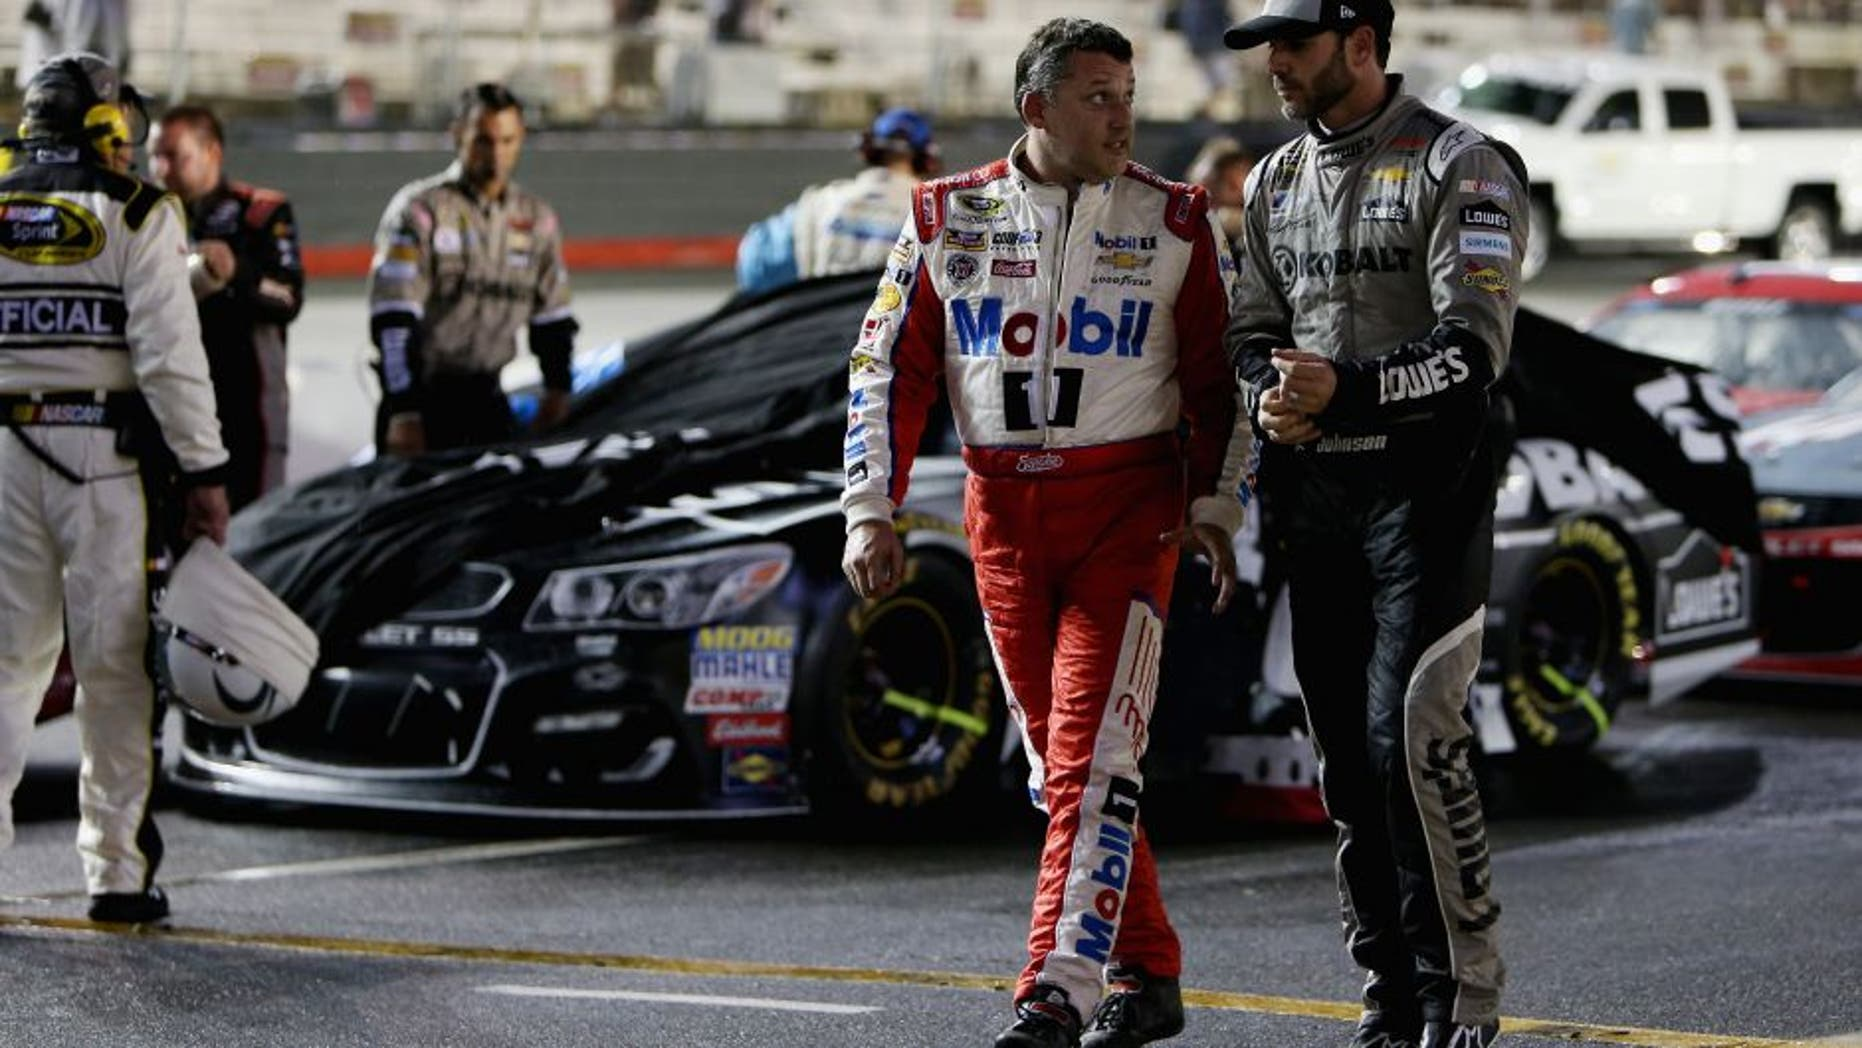 BRISTOL, TN - AUGUST 20: Tony Stewart, driver of the #14 Haas Automation Chevrolet, walks on the grid with Jimmie Johnson, driver of the #48 Kobalt Chevrolet, during a rain delay during the NASCAR Sprint Cup Series Bass Pro Shops NRA Night Race at Bristol Motor Speedway on August 20, 2016 in Bristol, Tennessee. (Photo by Rey Del Rio/Getty Images)